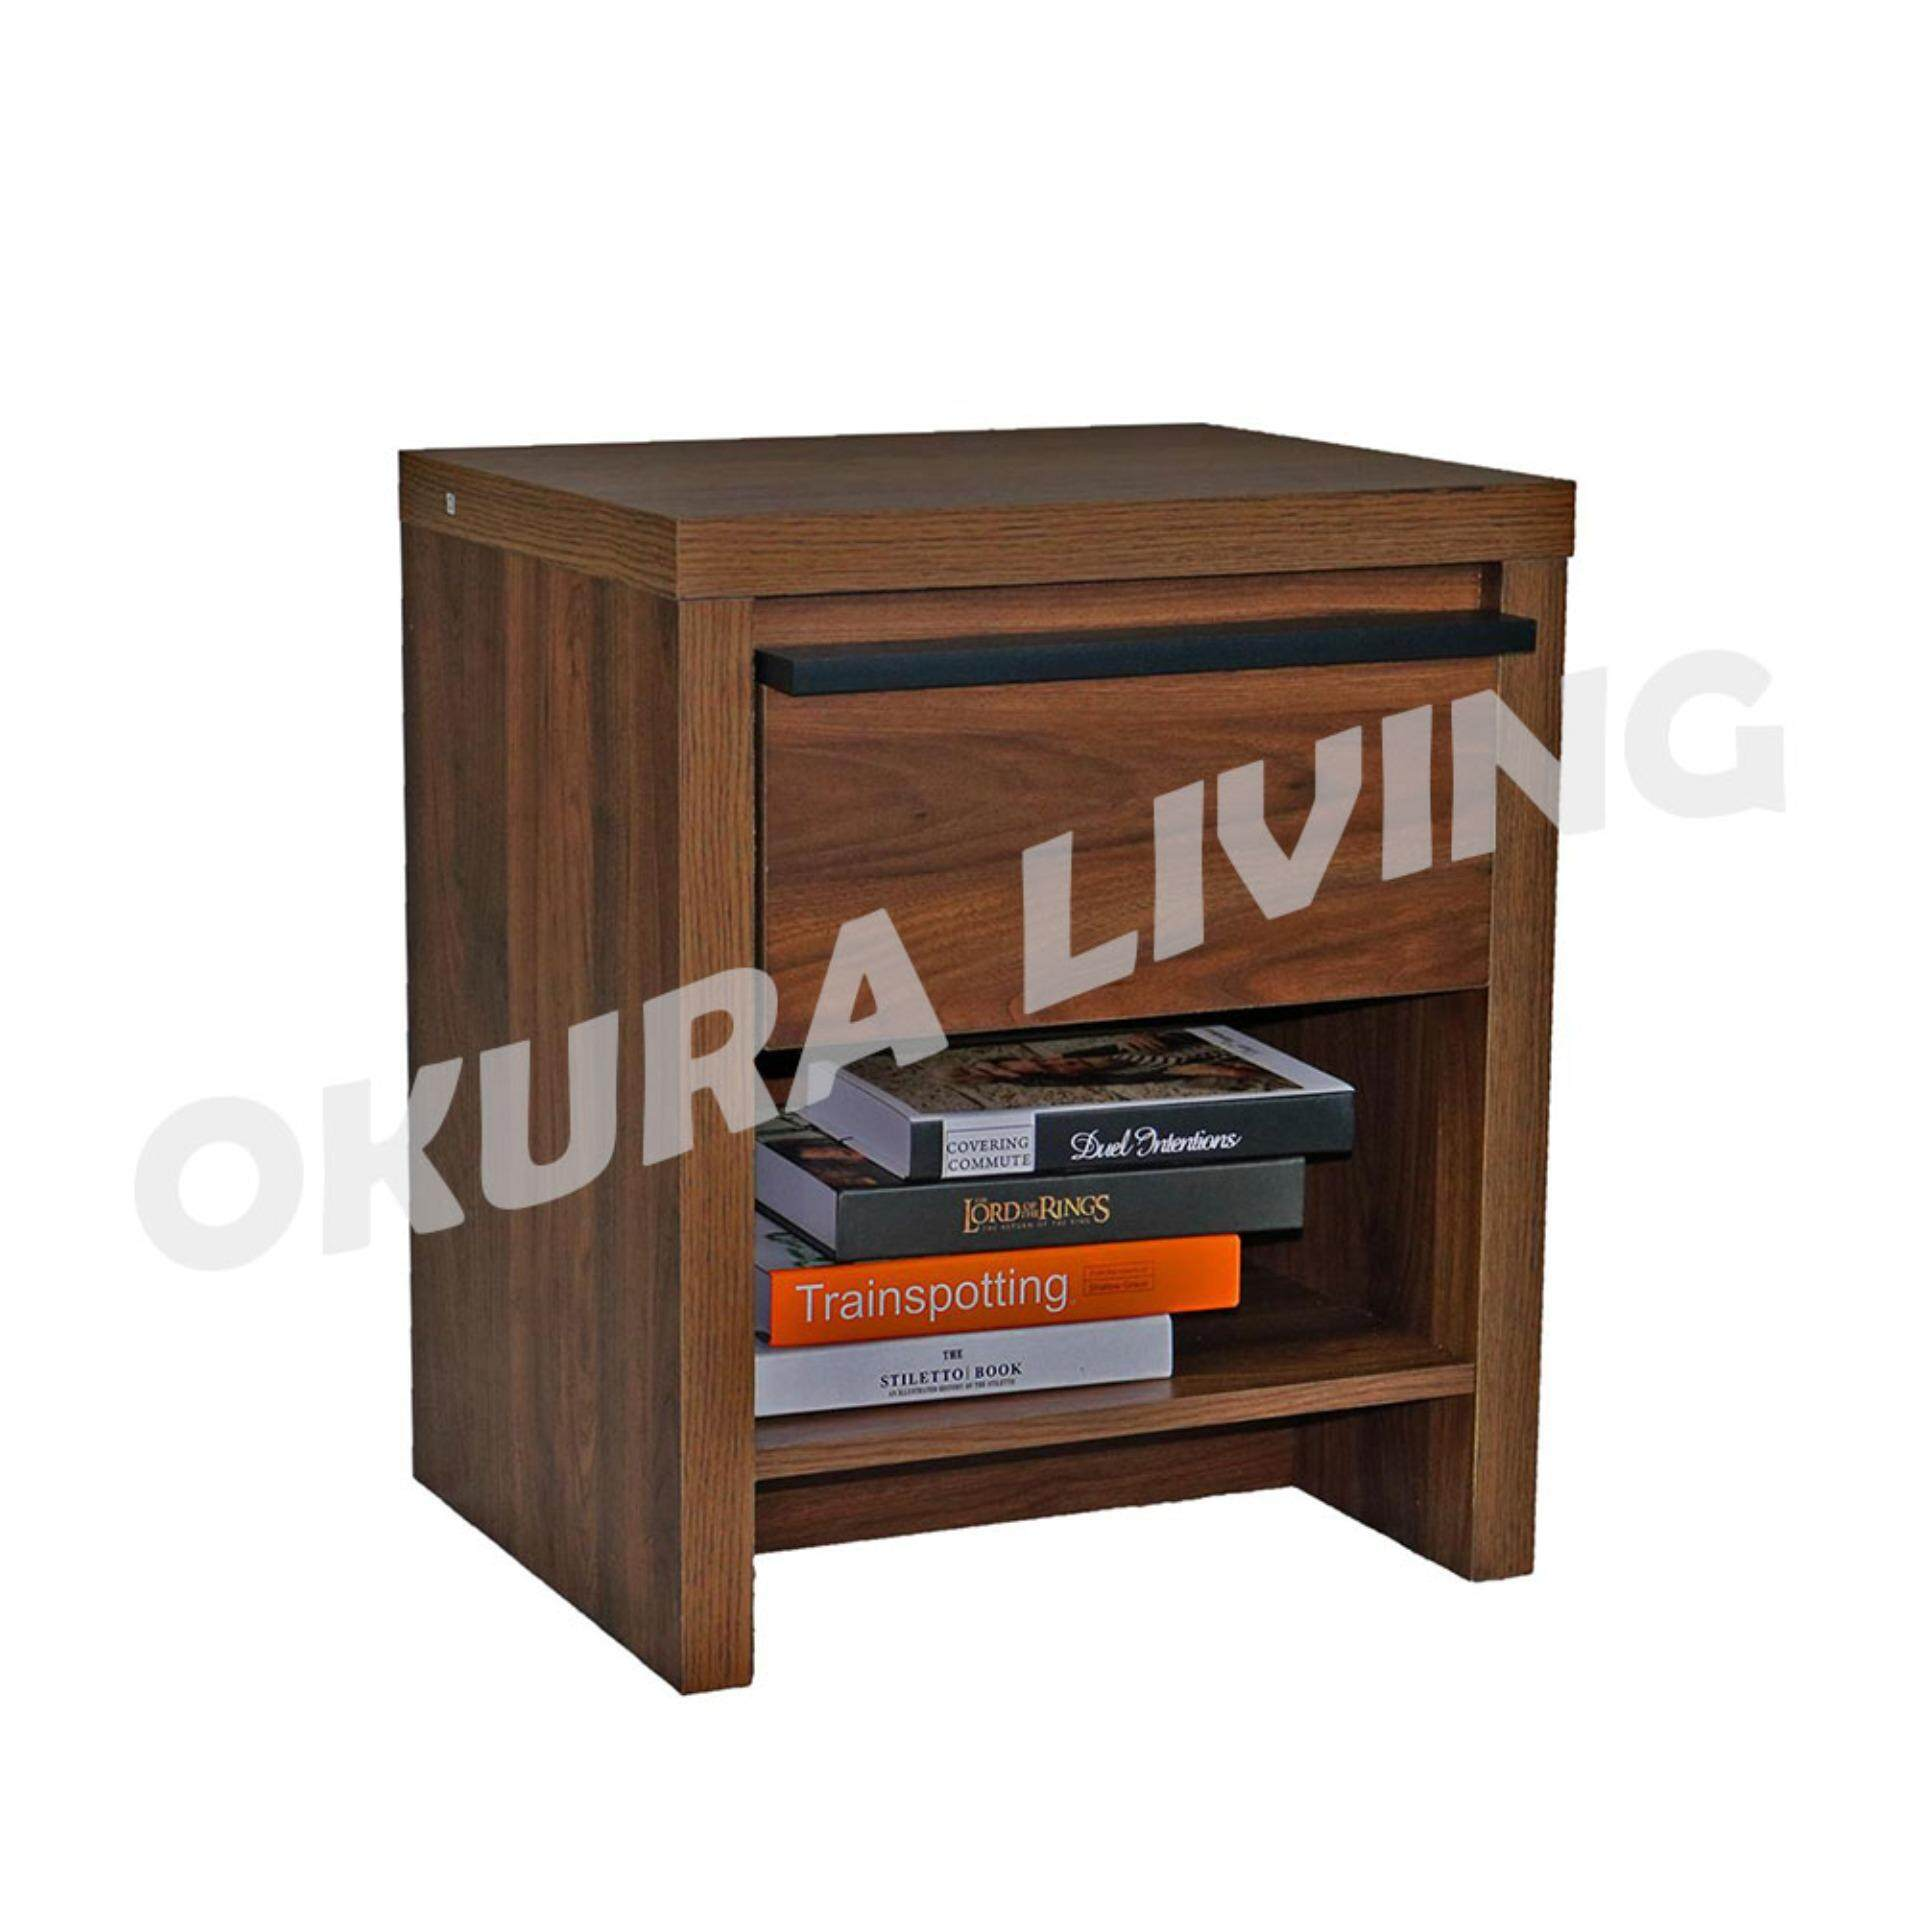 Okura Side Table / Cabinet with Drawer Home Living / Office Furniture